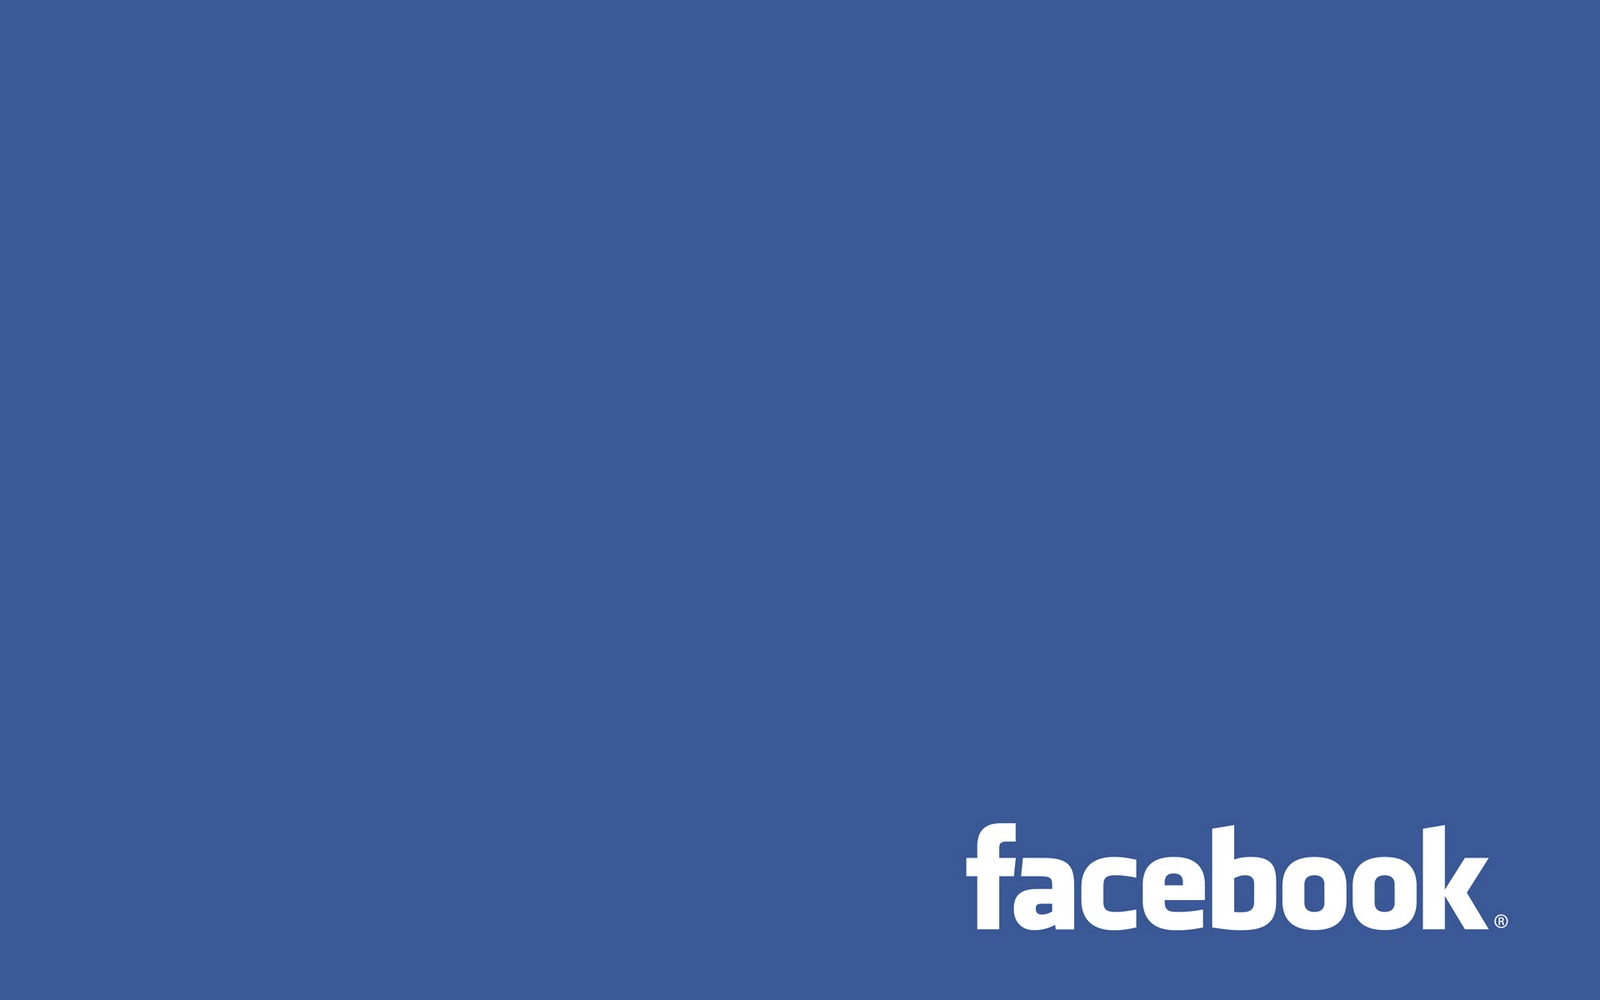 HD Facebook Wallpapers | Full HD Pictures